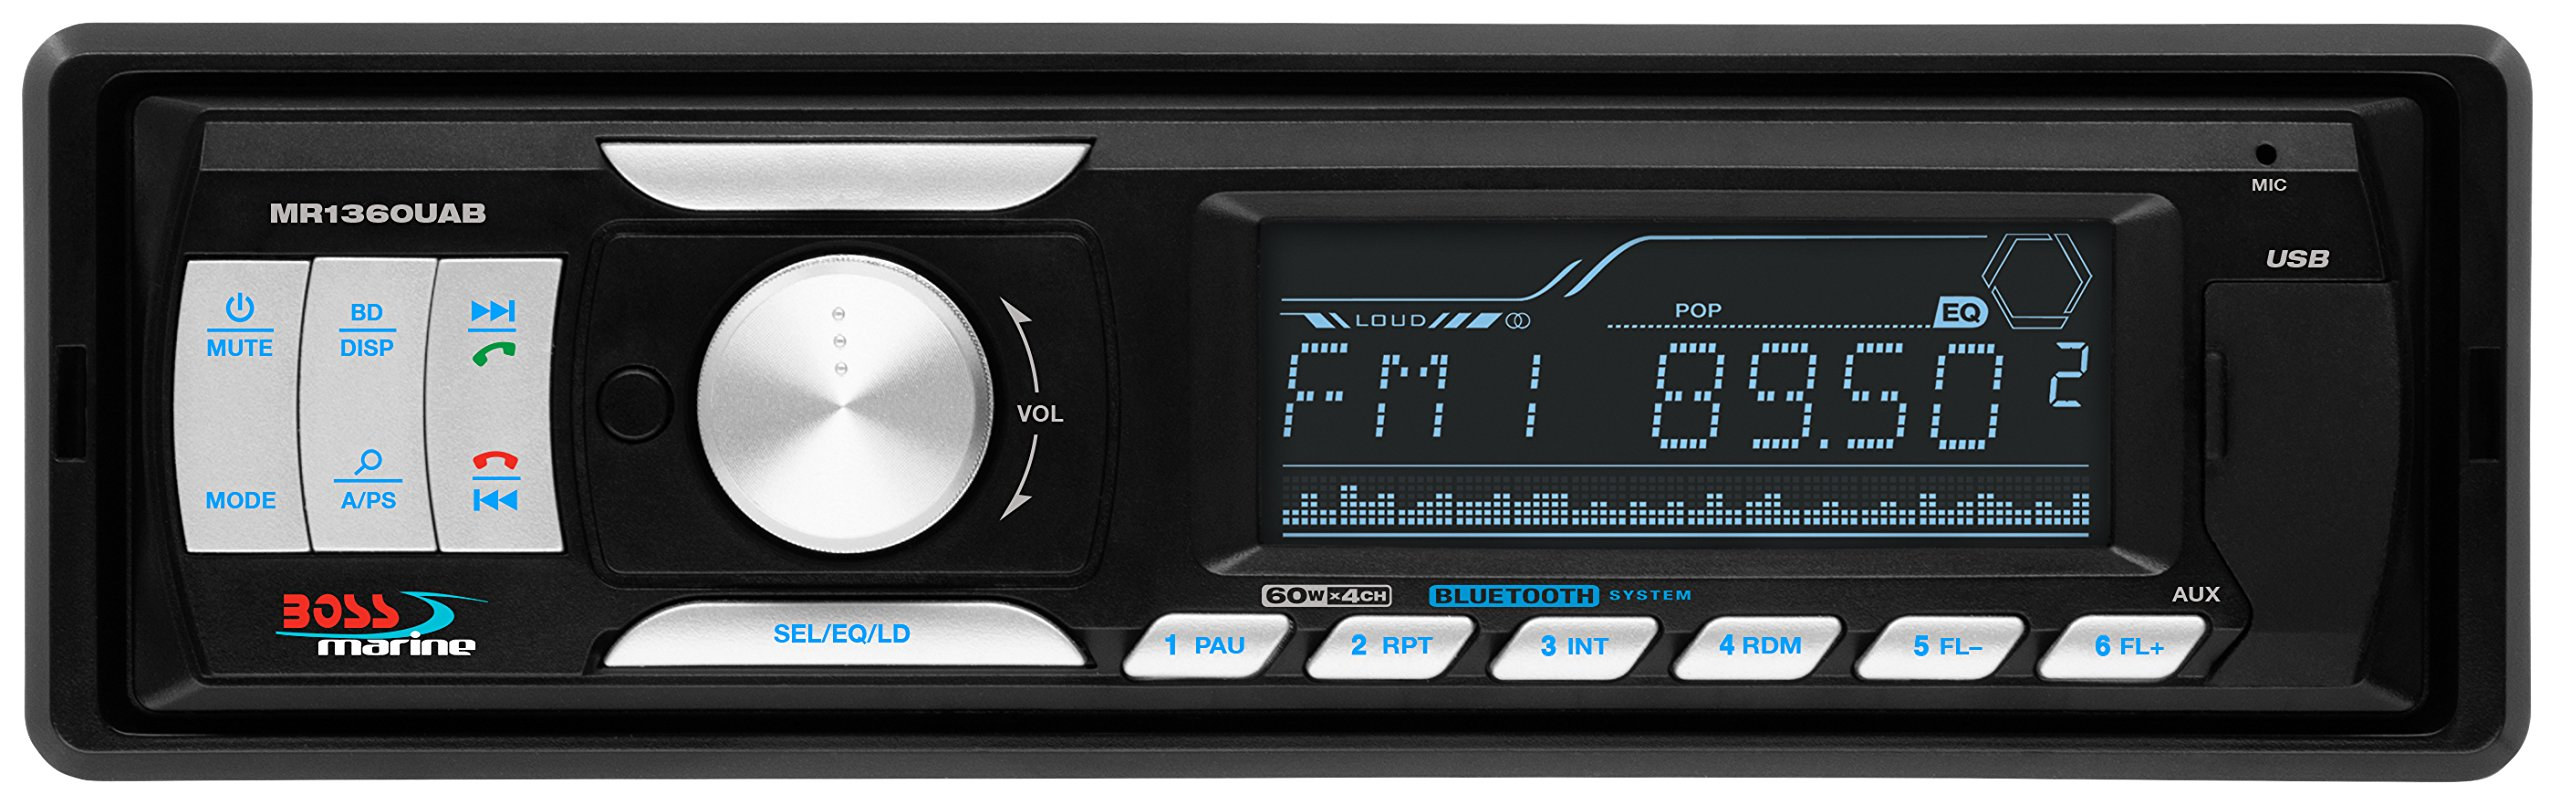 BOSS AUDIO MR1360UAB Marine Single-DIN MECH-LESS Receiver, Bluetooth, Wireless Remote